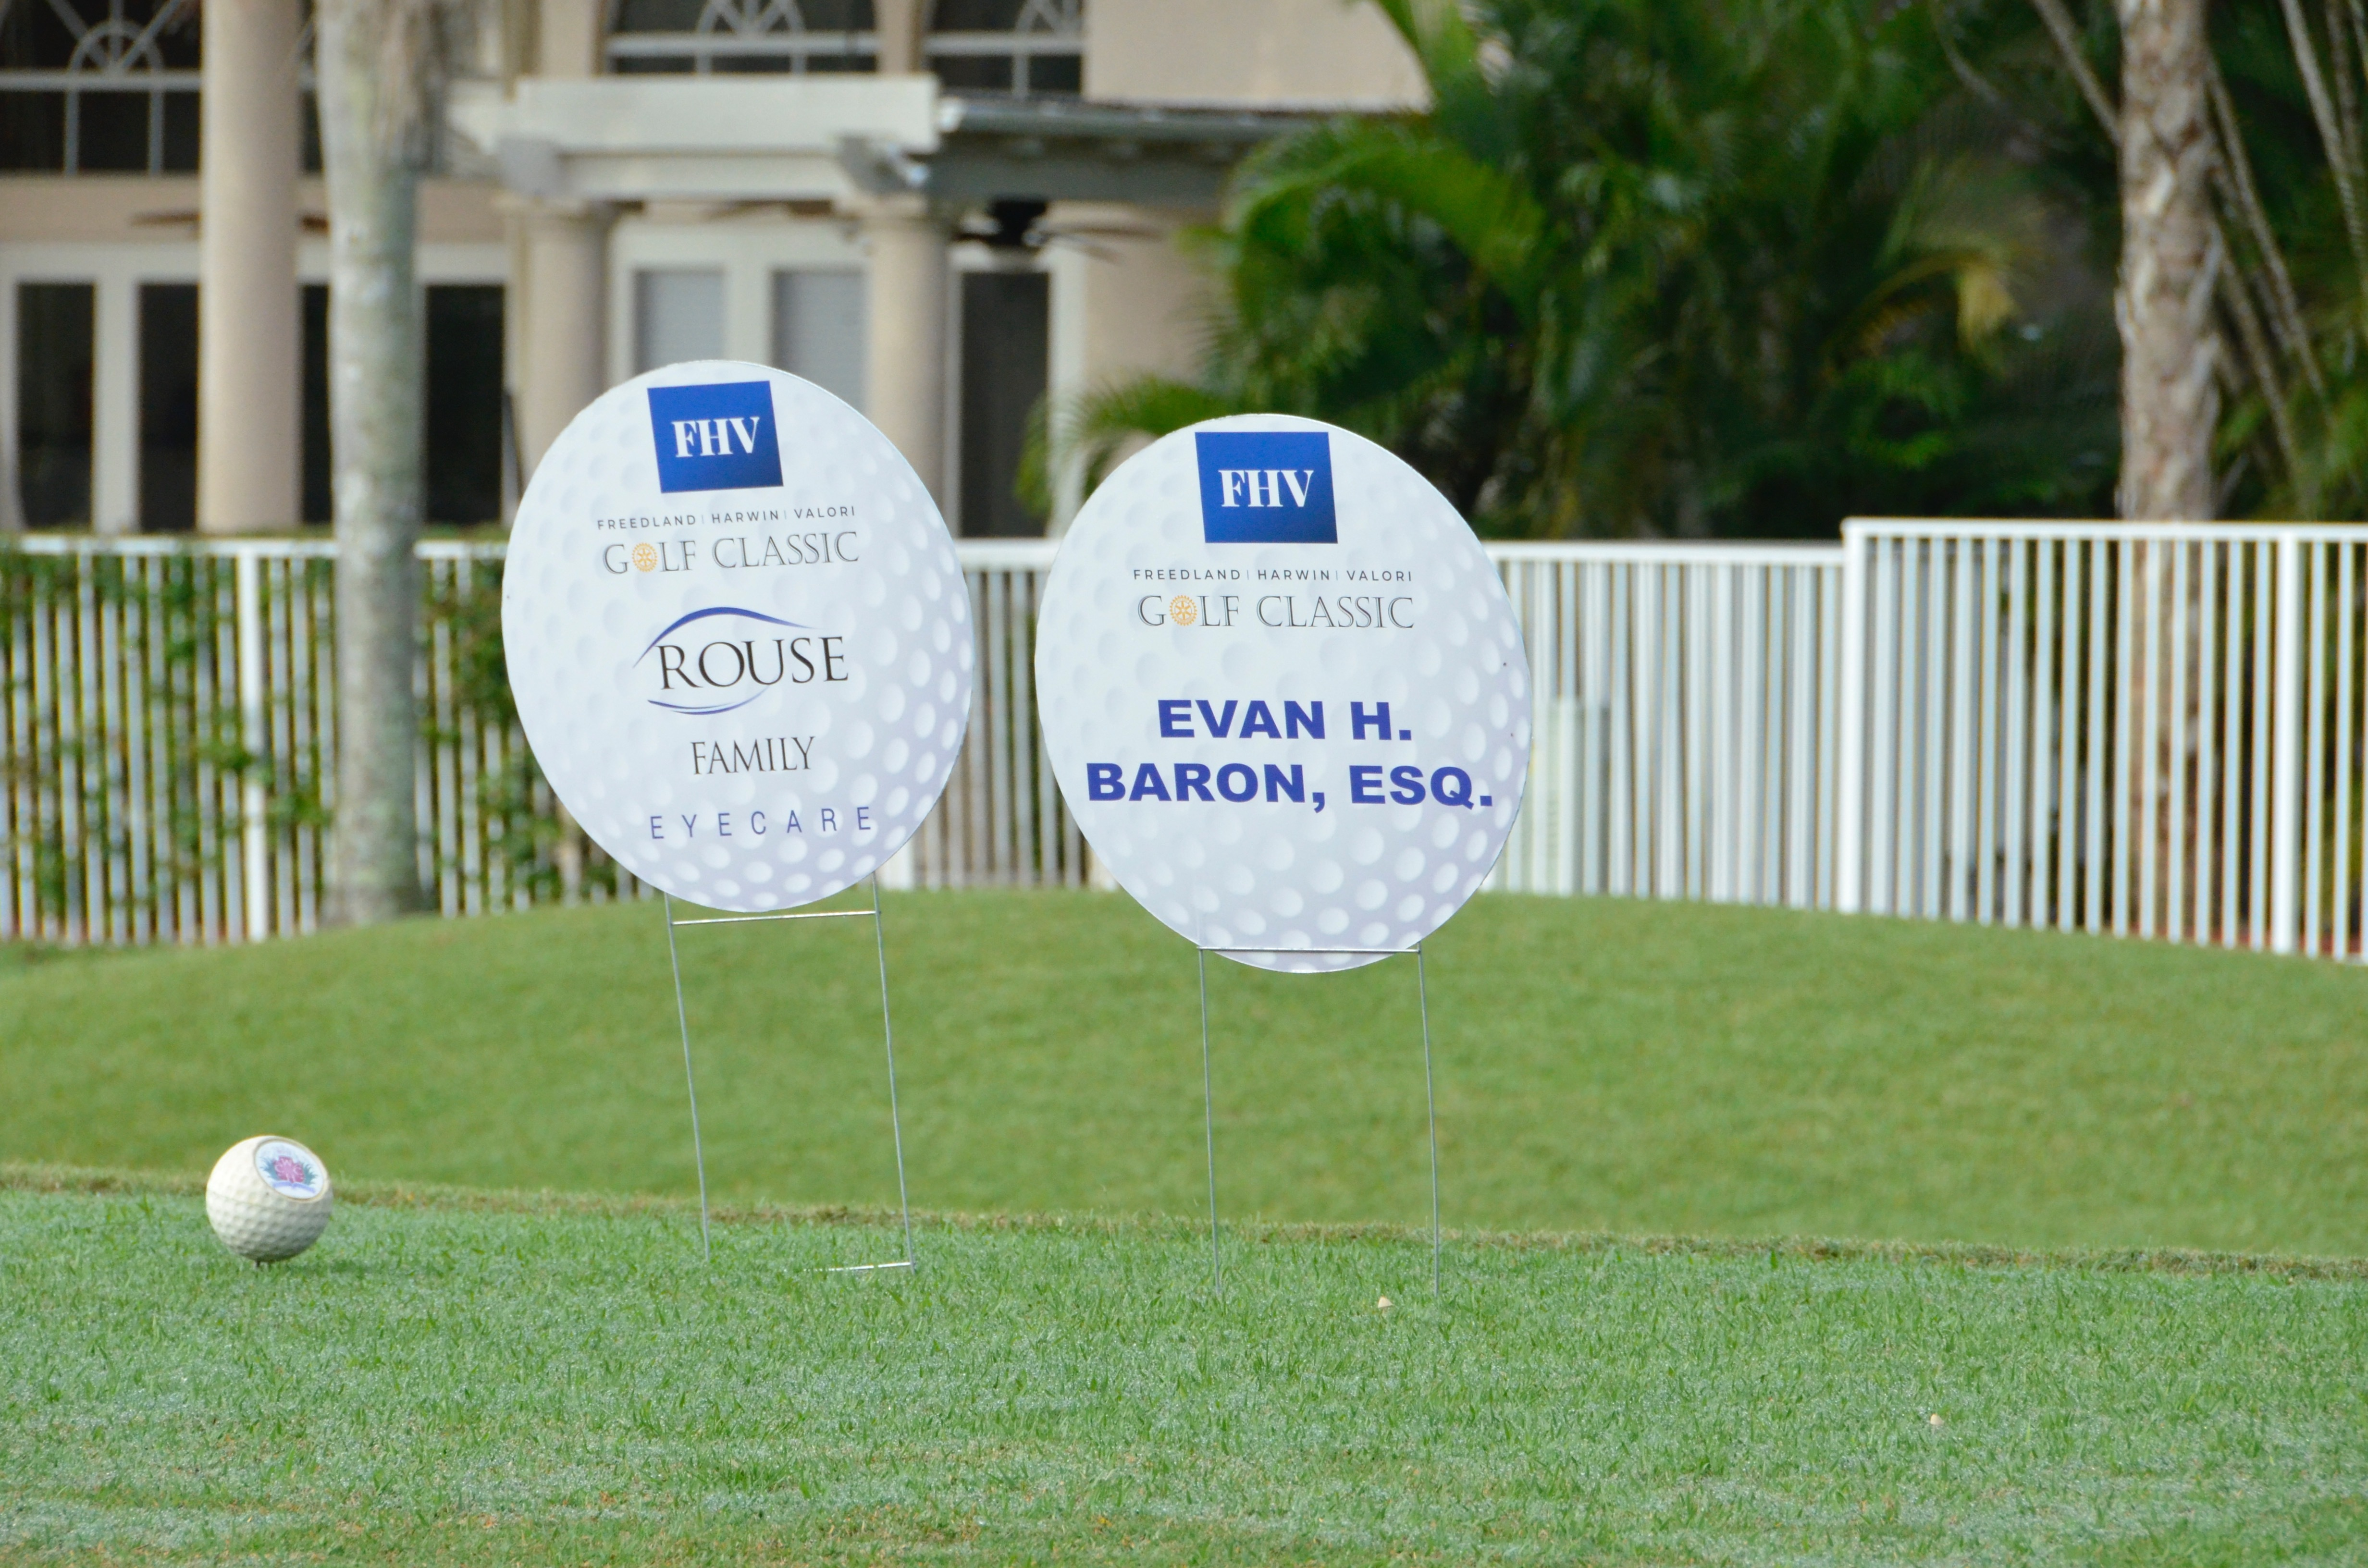 33rd Annual Rotary Golf Classic Sponsored by FHVLEGAL.COM gallery image #47